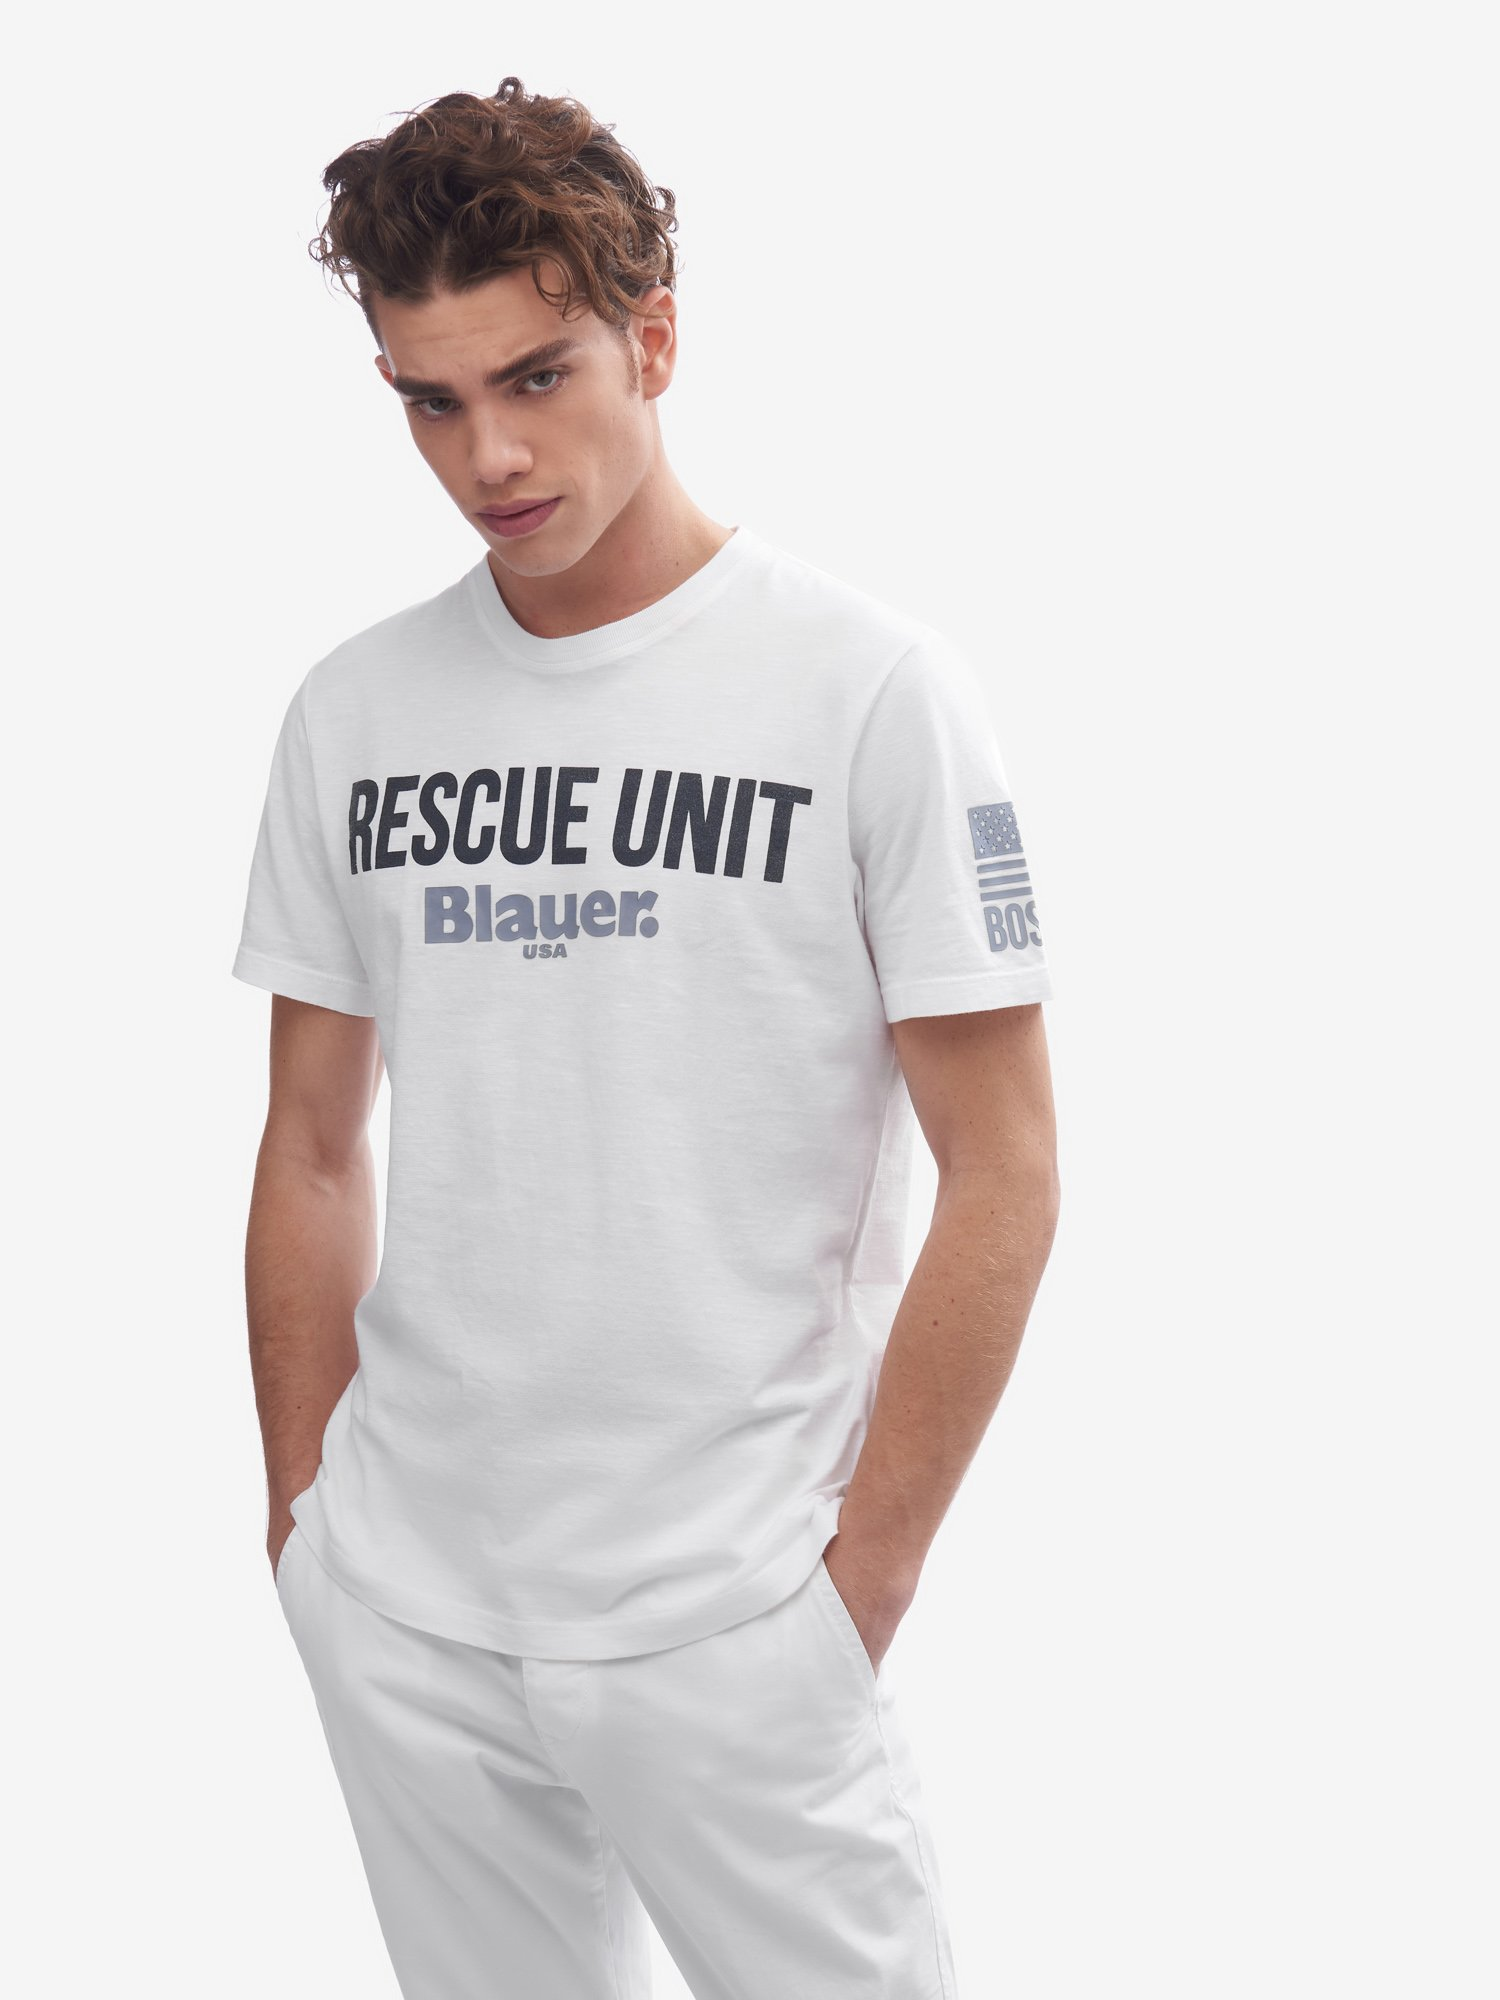 RESCUE UNIT T-SHIRT - Blauer